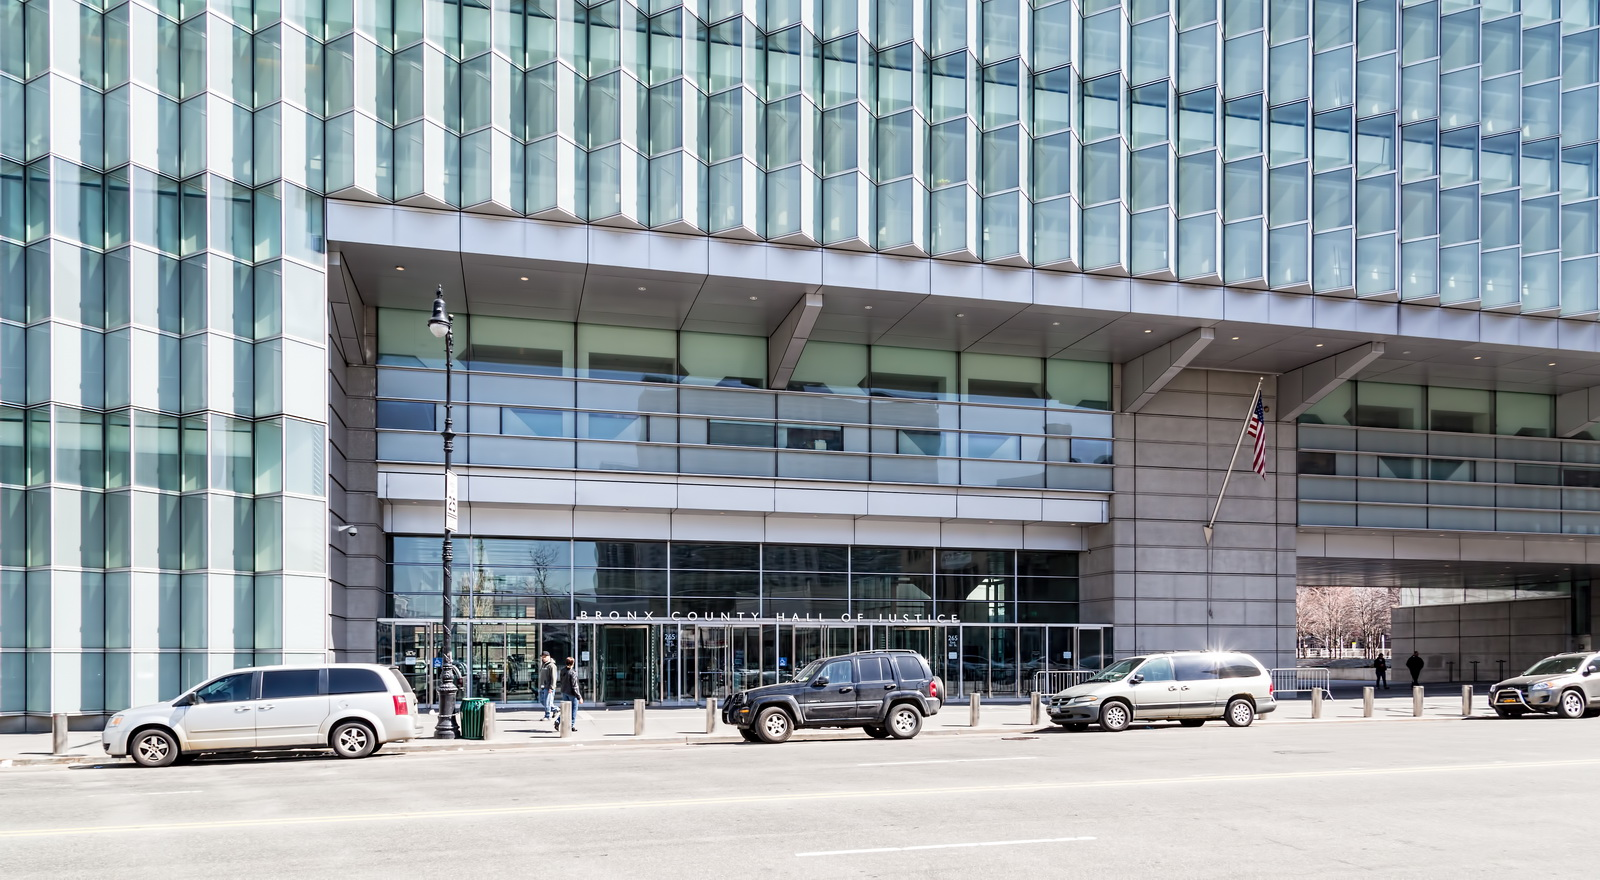 New York Architecture Photos: Bronx County Hall of Justice